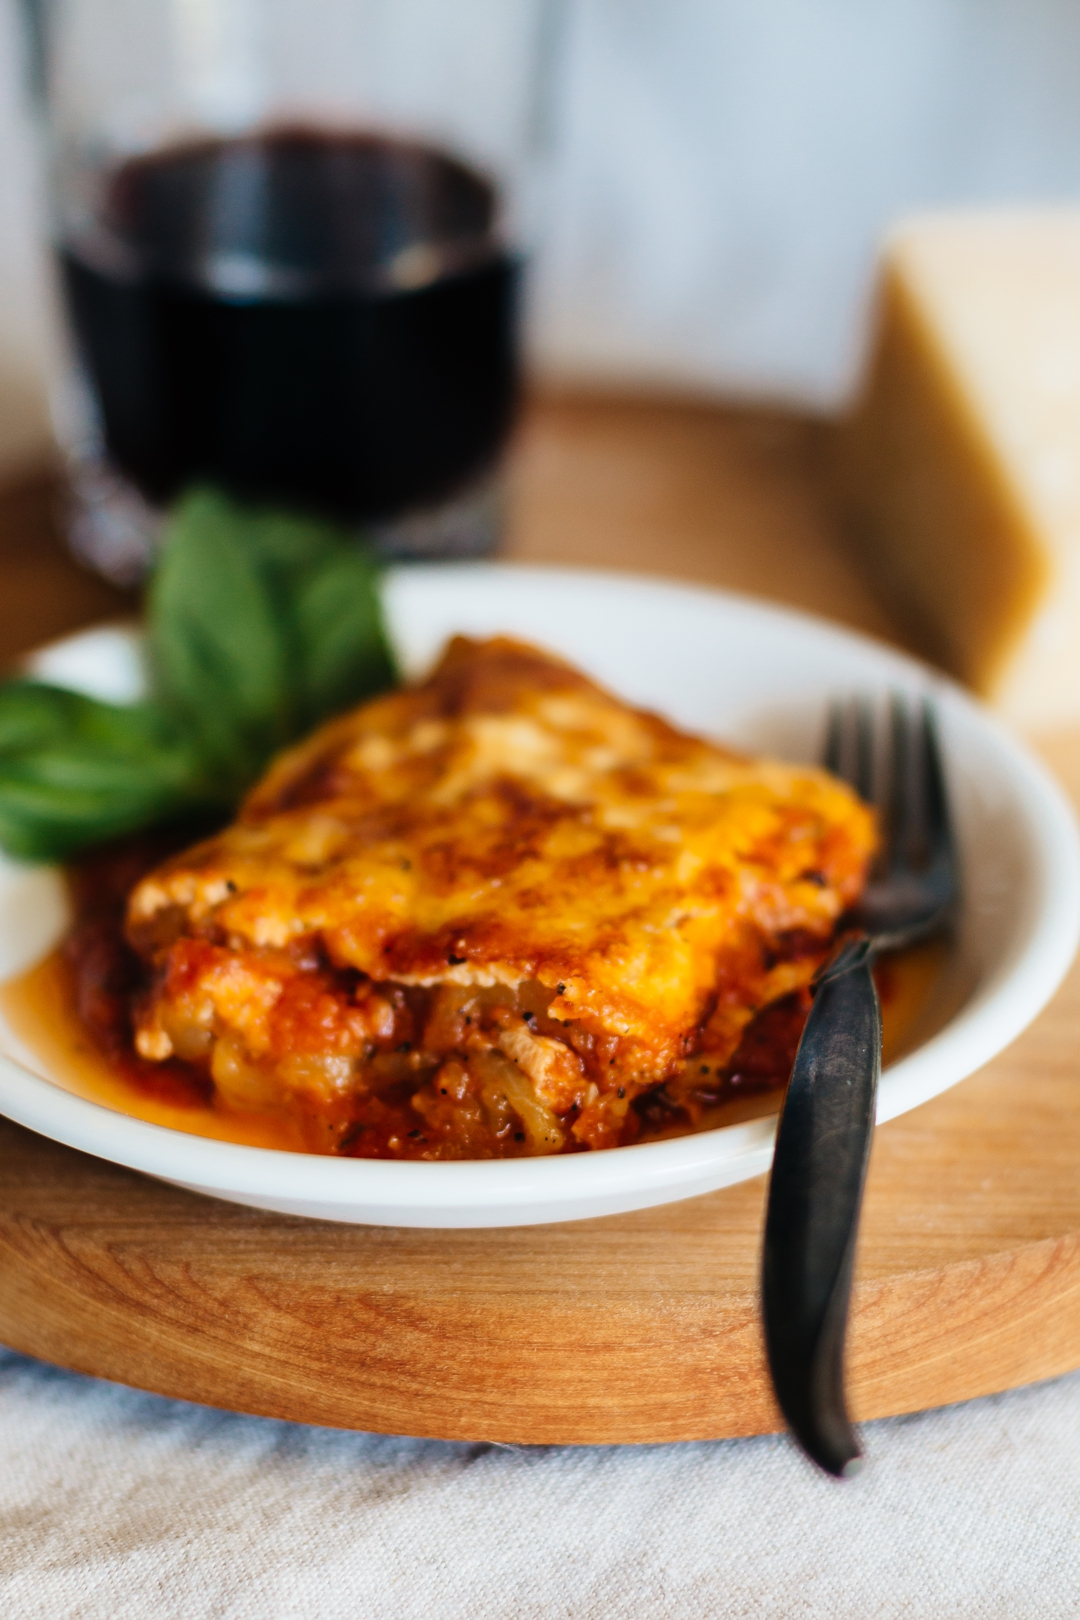 A close up vertical shot of a slice of zucchini lasagna on a plate with a fork.